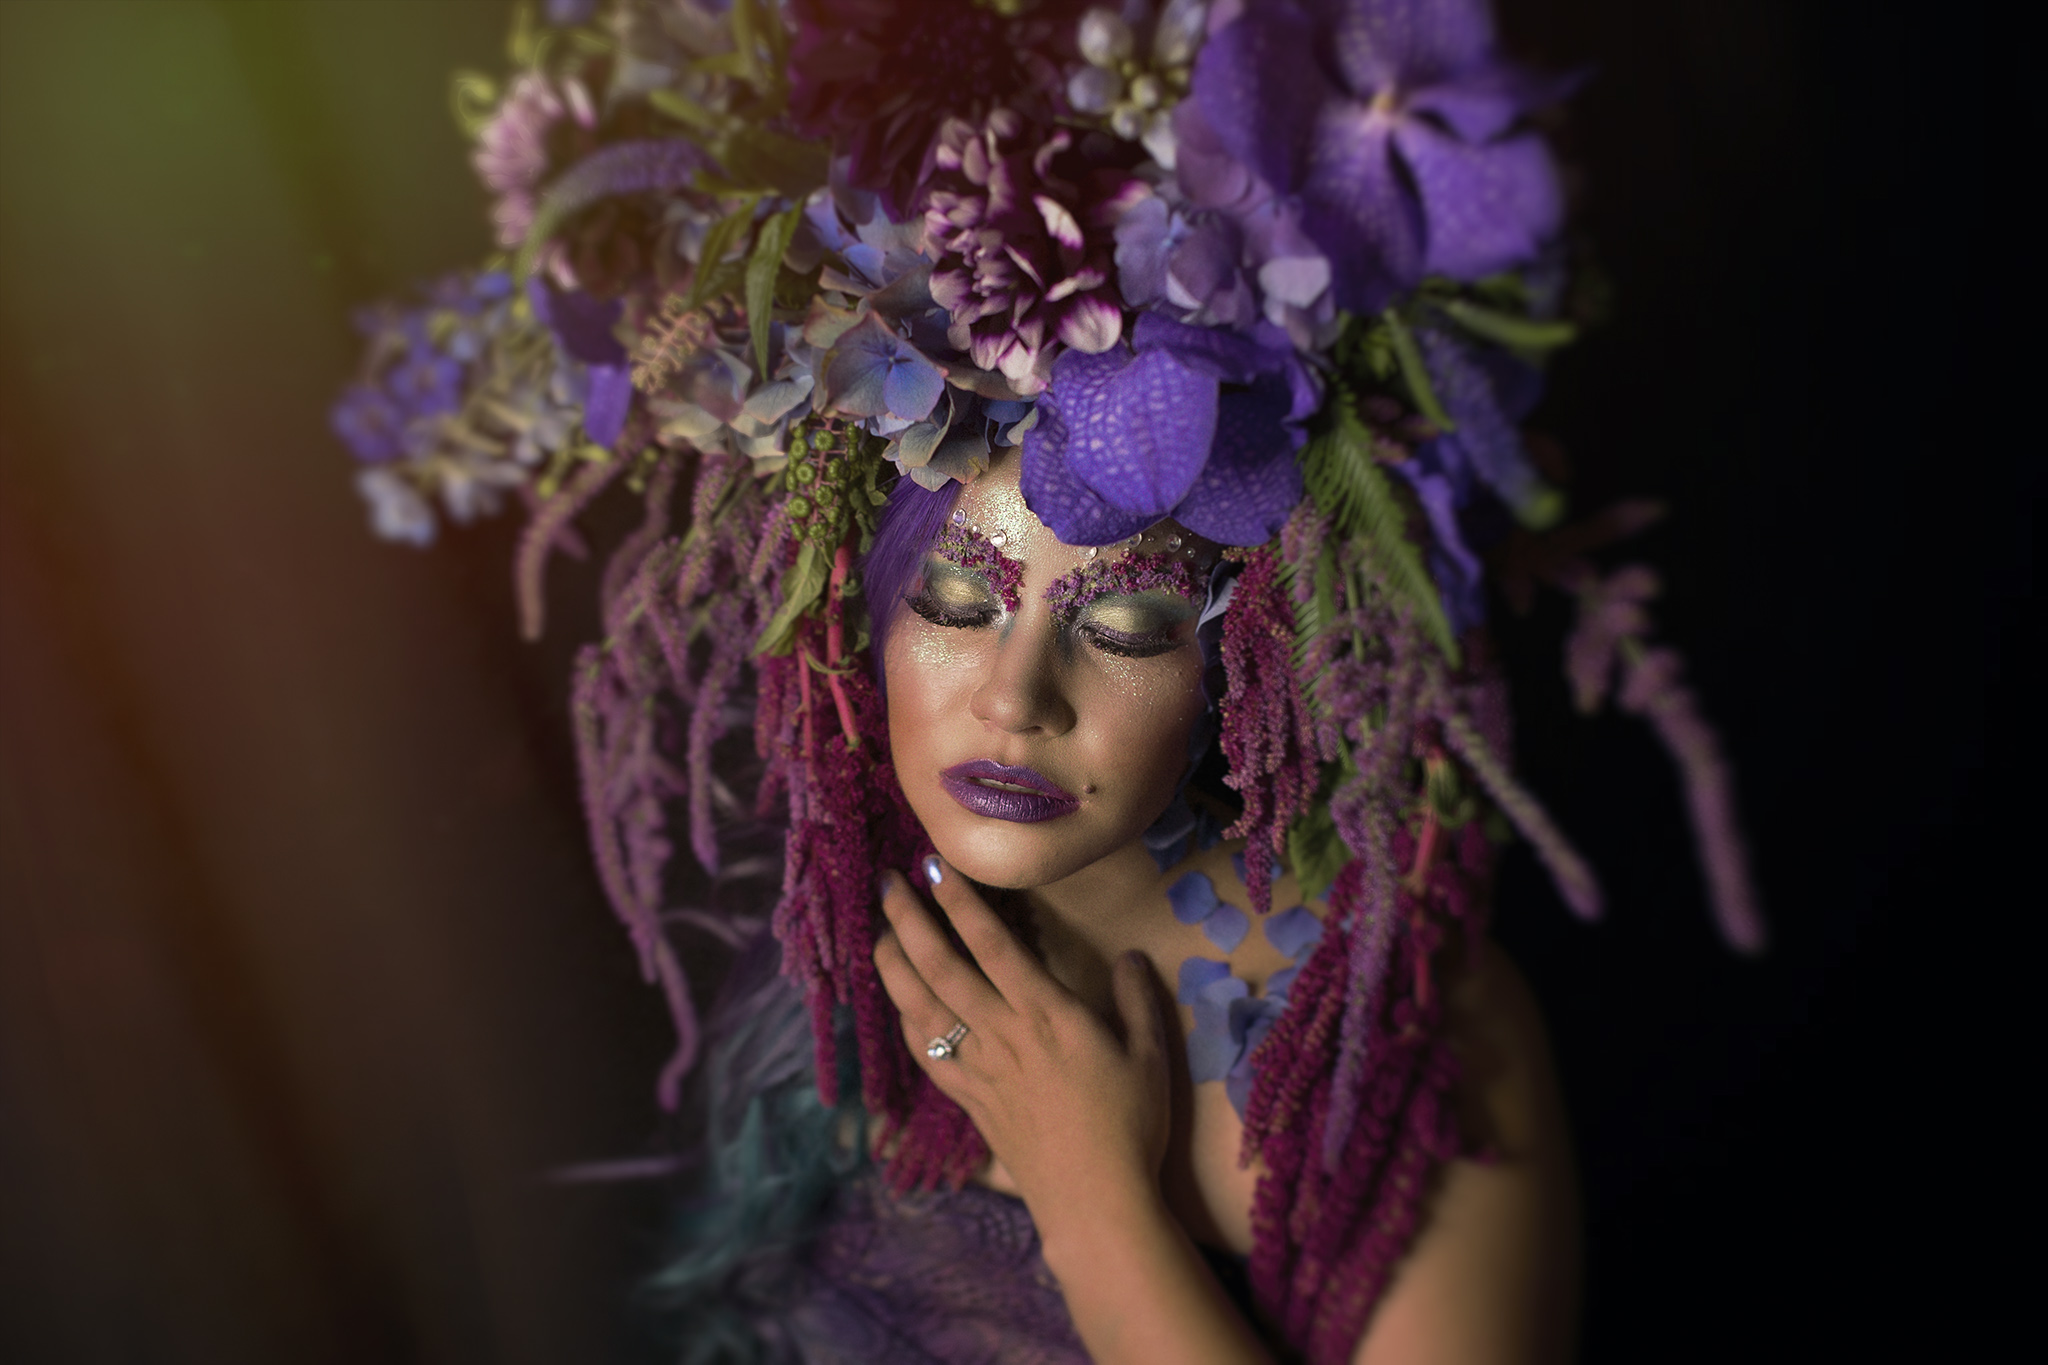 Floral headdress by Delightful by Rochelle. MUA and Model: Alex Flores of Elegance by Alex.